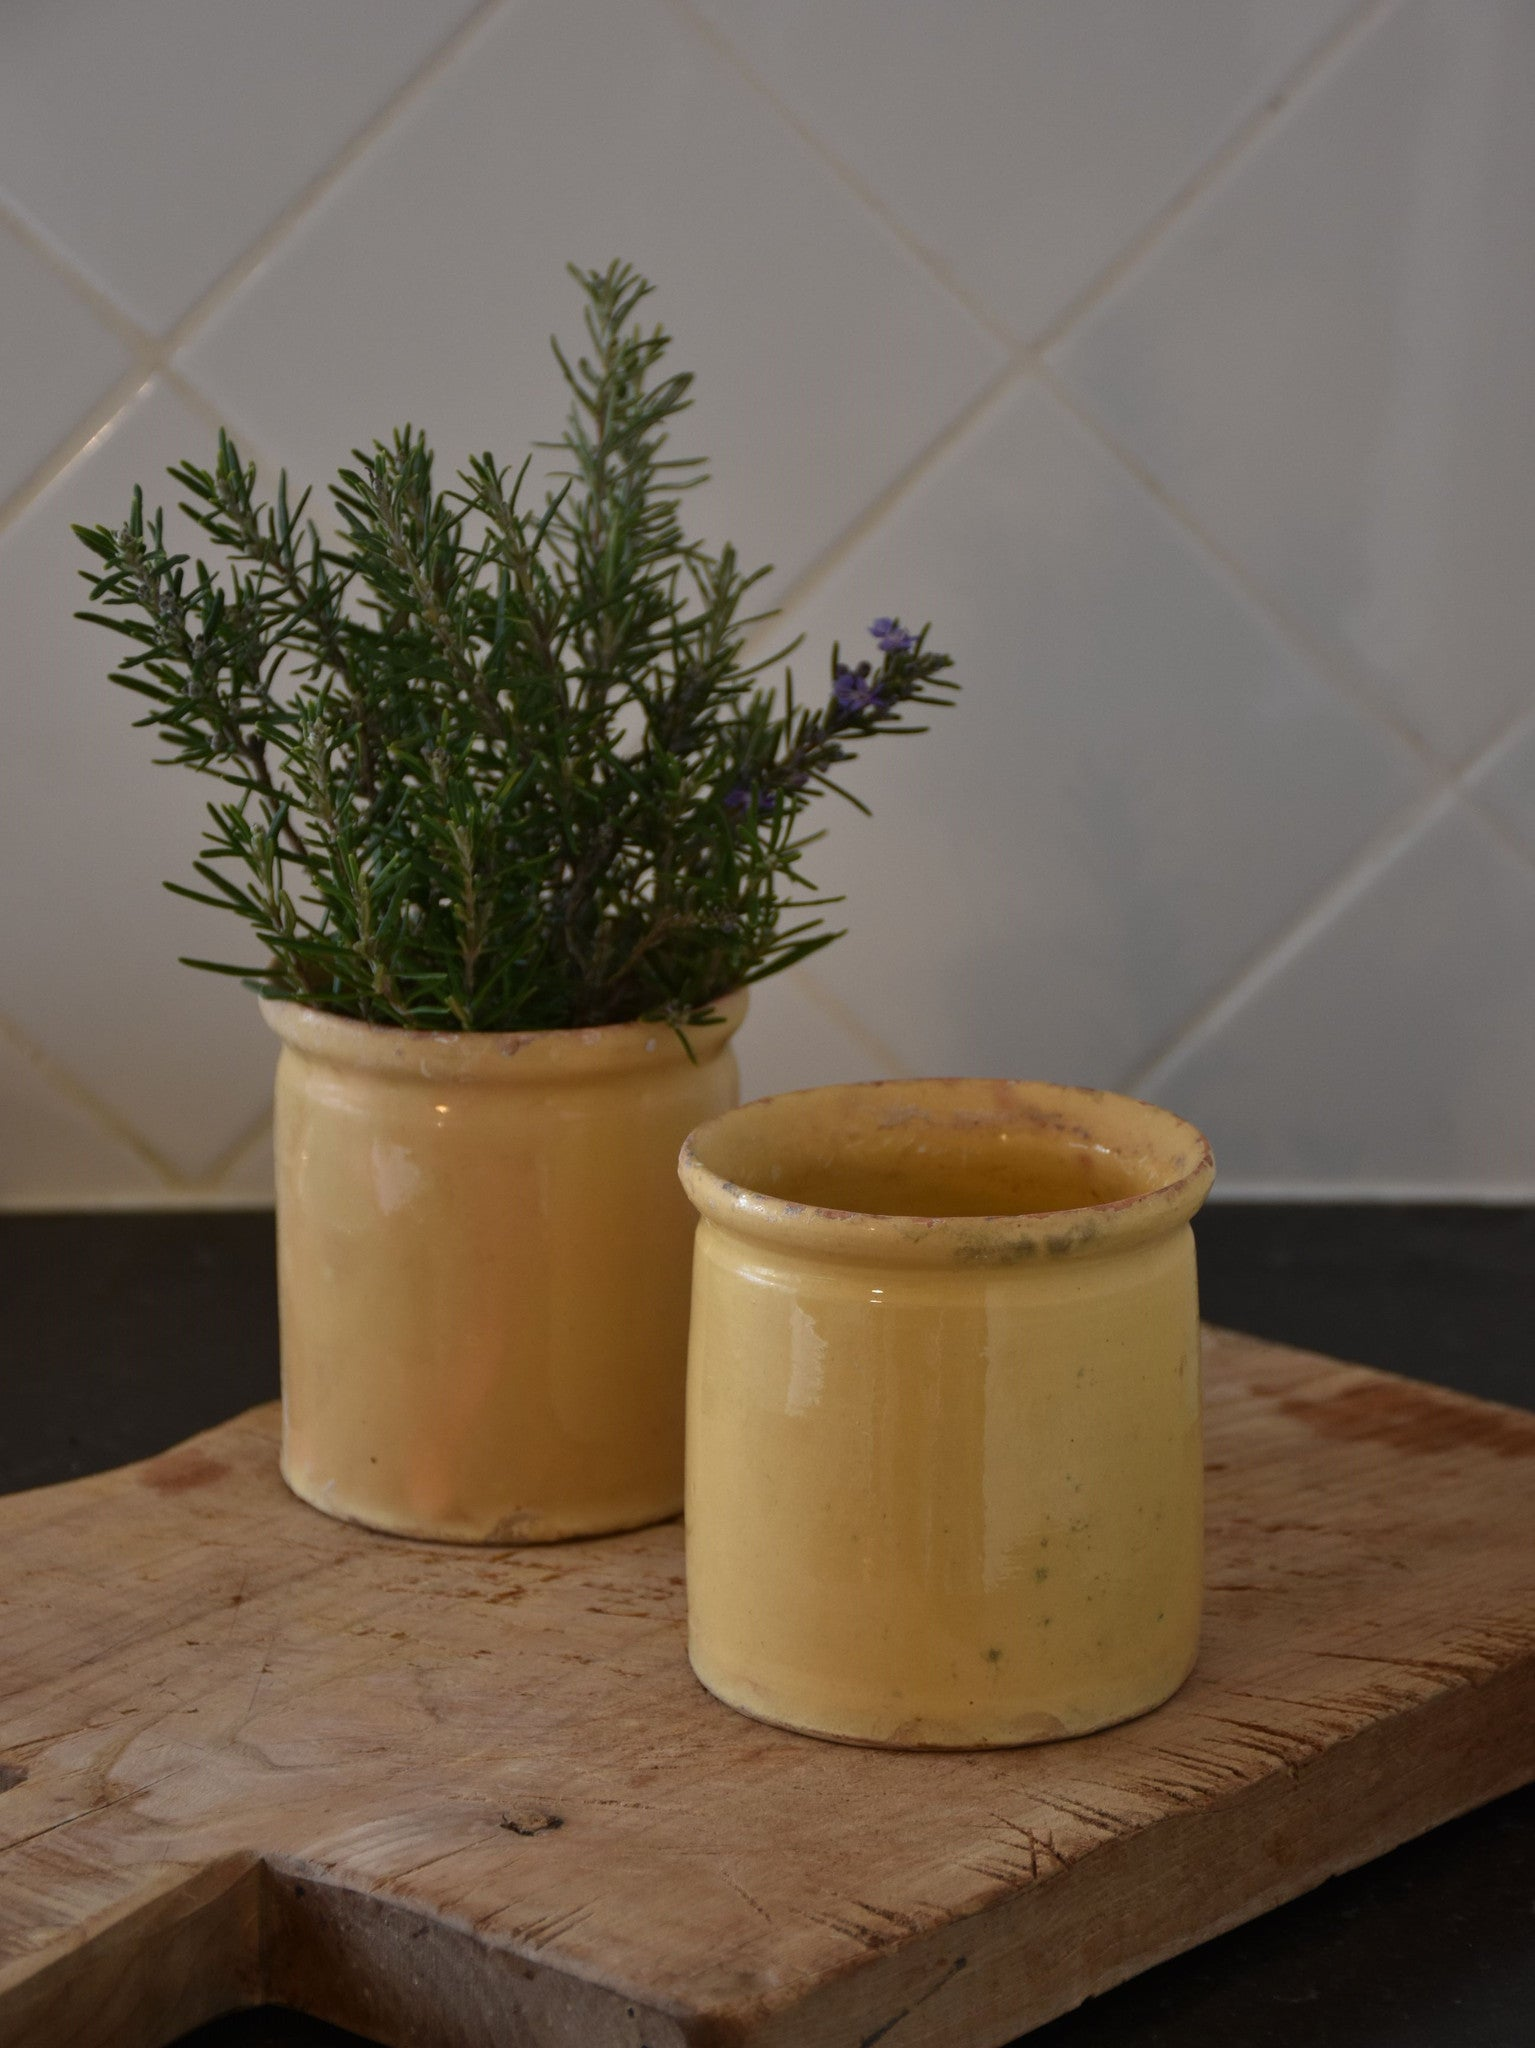 19th century French yellow ware preserving jars - two